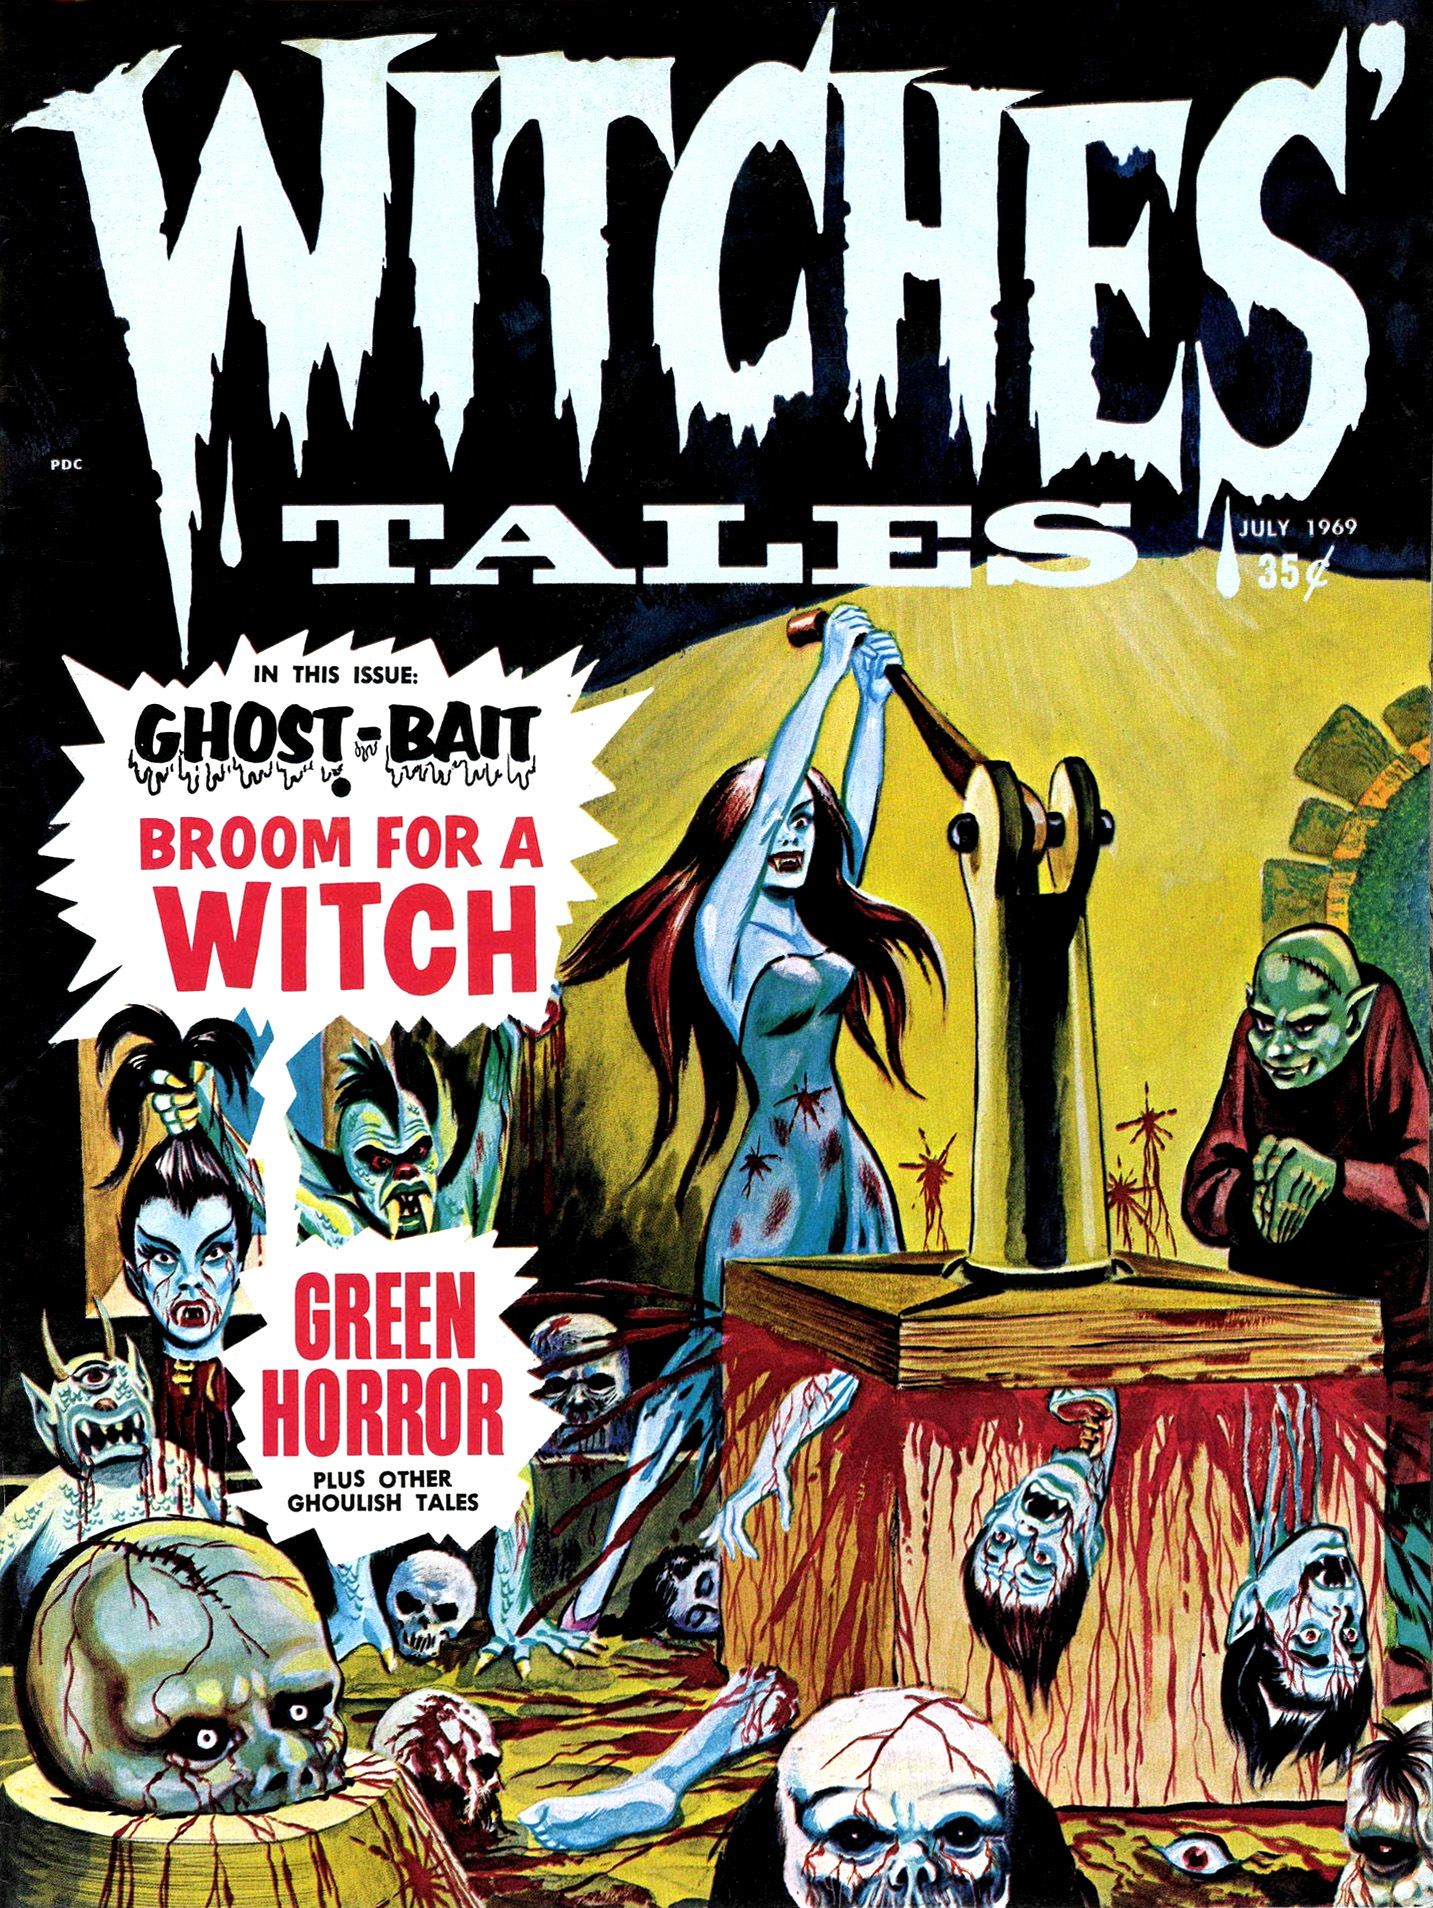 Witches' Tales Vol. 1 #7 (Eerie Publications 1969)